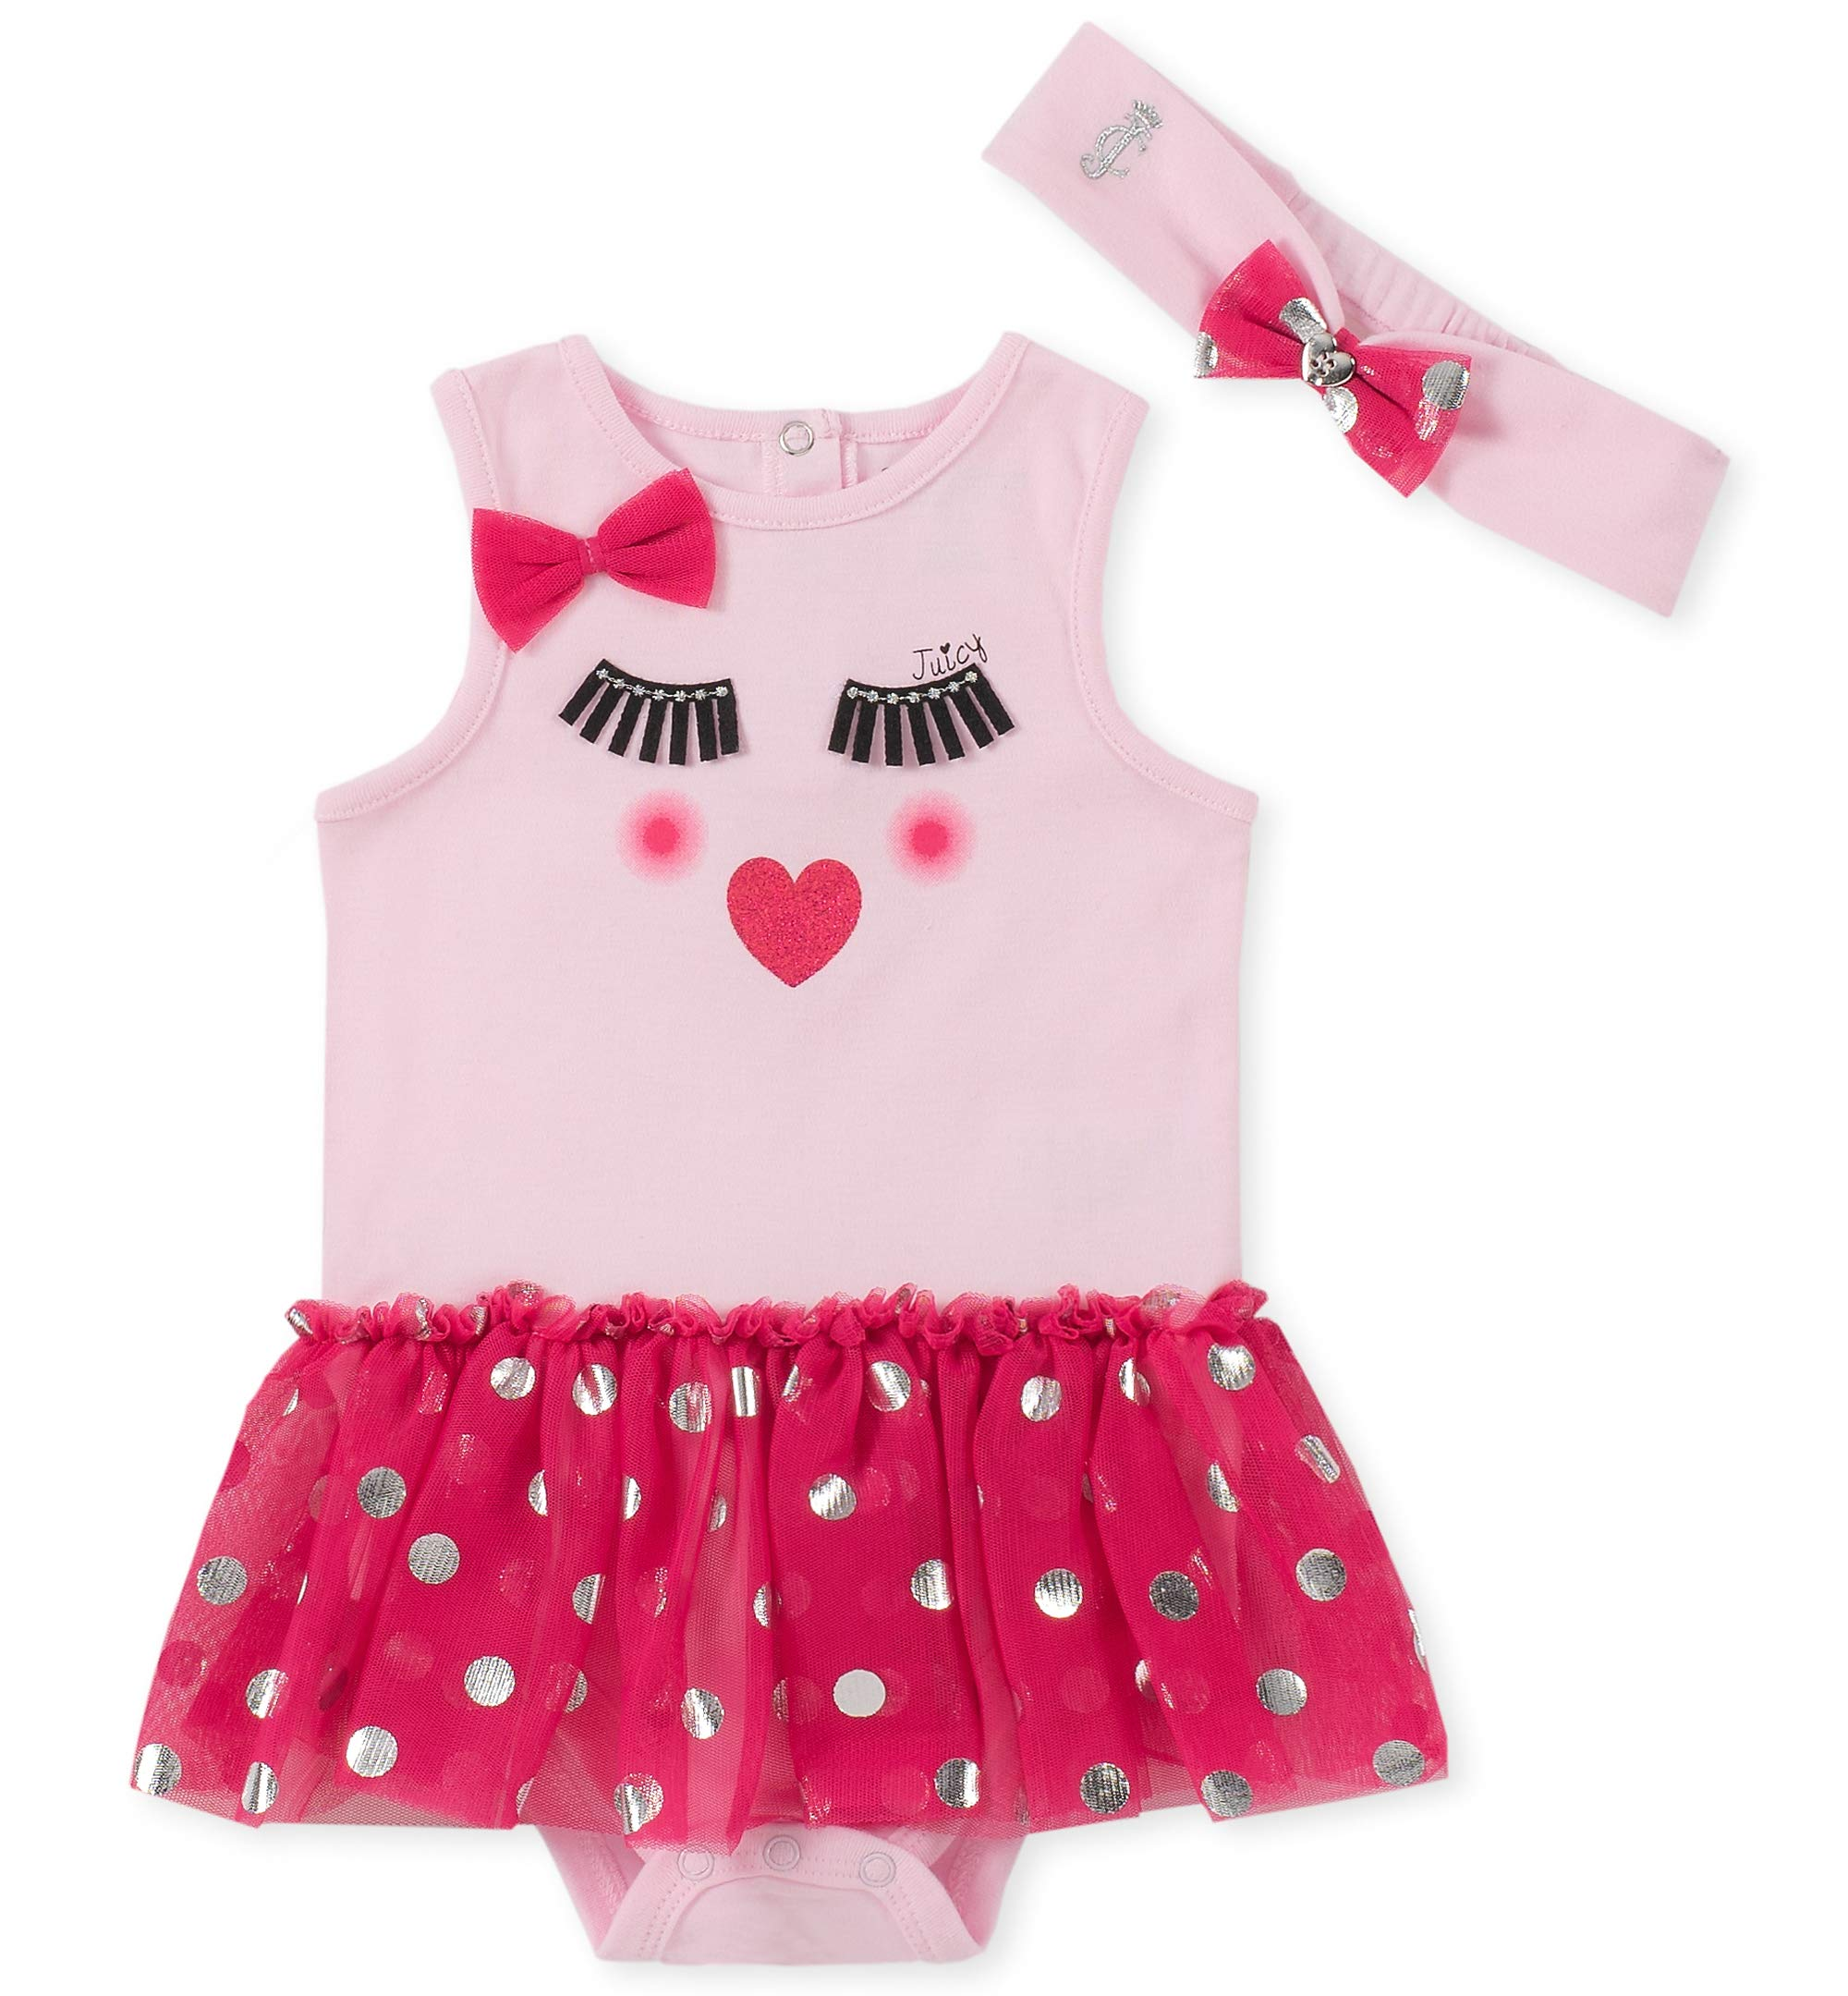 Juicy Couture Baby Girls Tutu Bodysuit